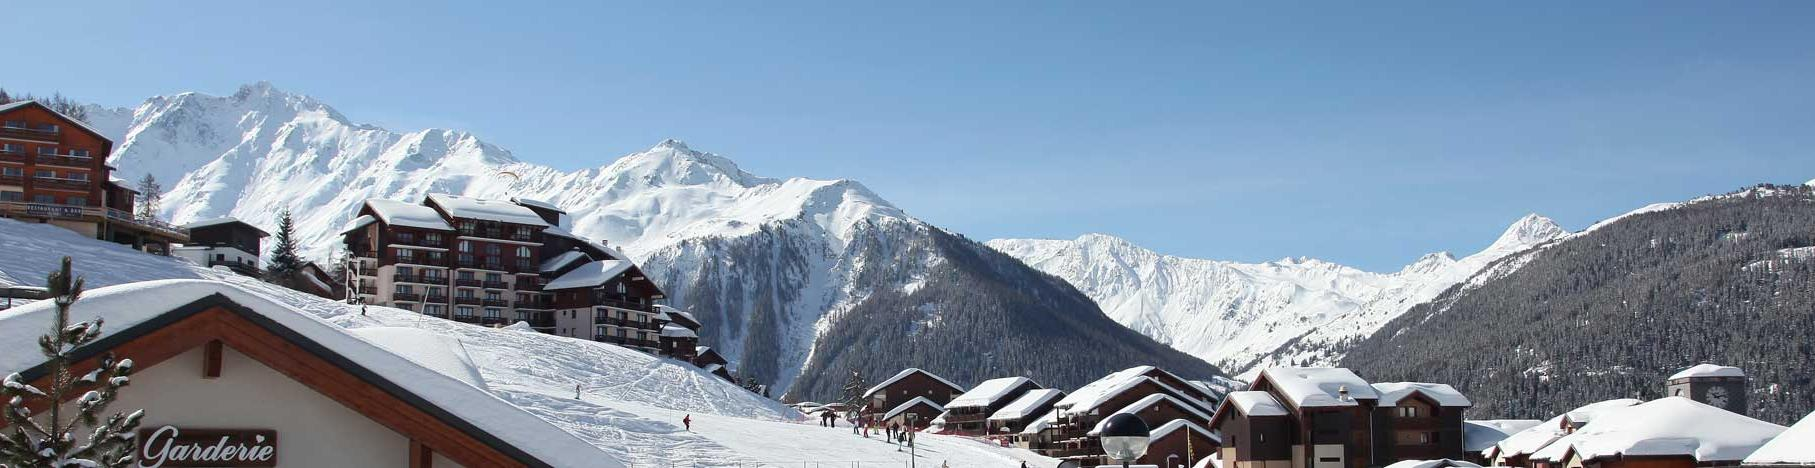 panorama of Peisey Vallandry village with mountains in the background